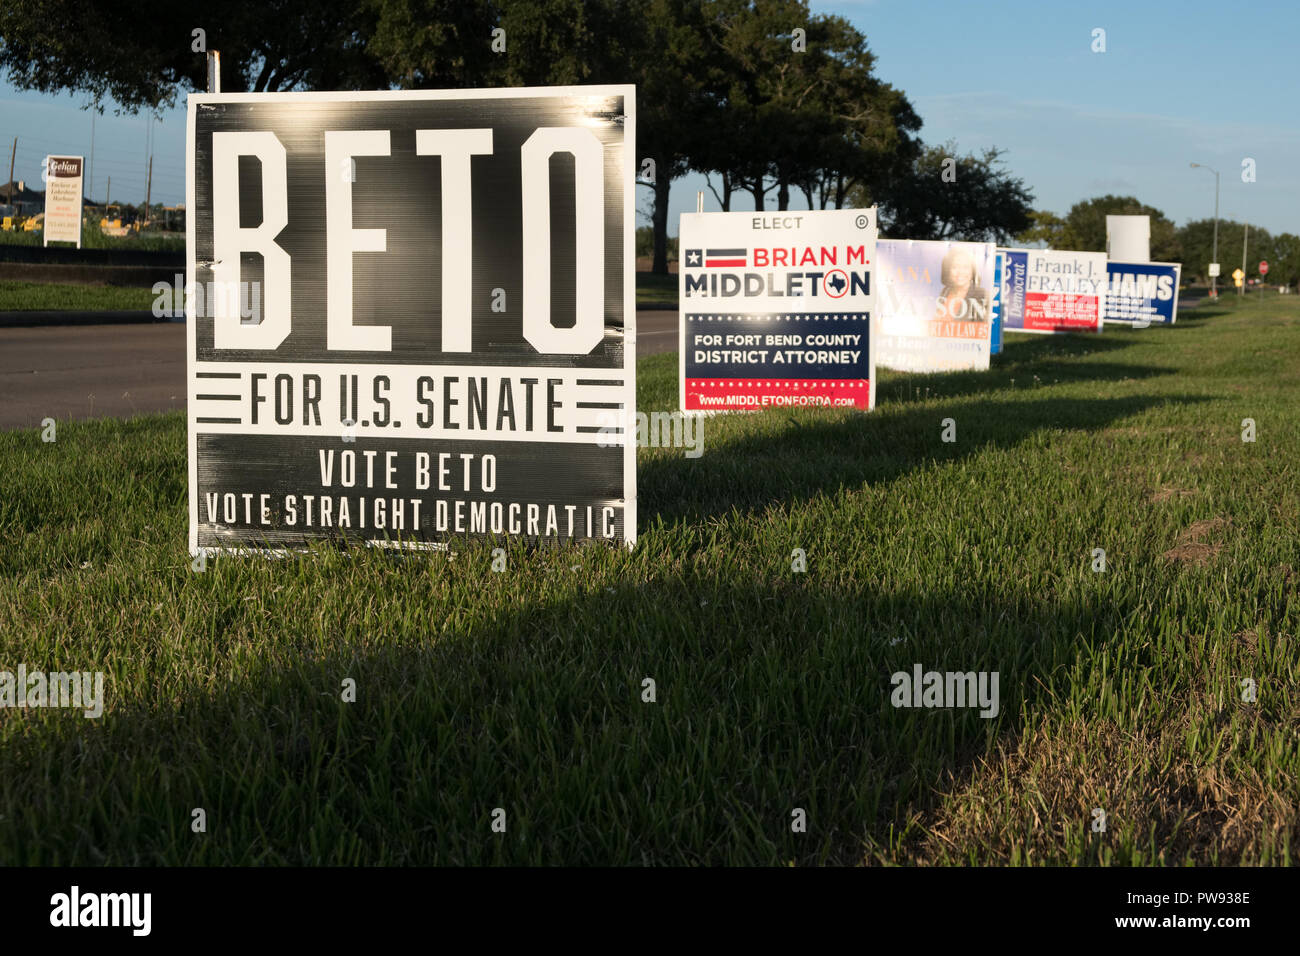 Missouri City, Texas - October 13, 2018:  Beto O'Rourke election signs are seen in many residential areas in Texas. Credit: michelmond/Alamy Live News - Stock Image